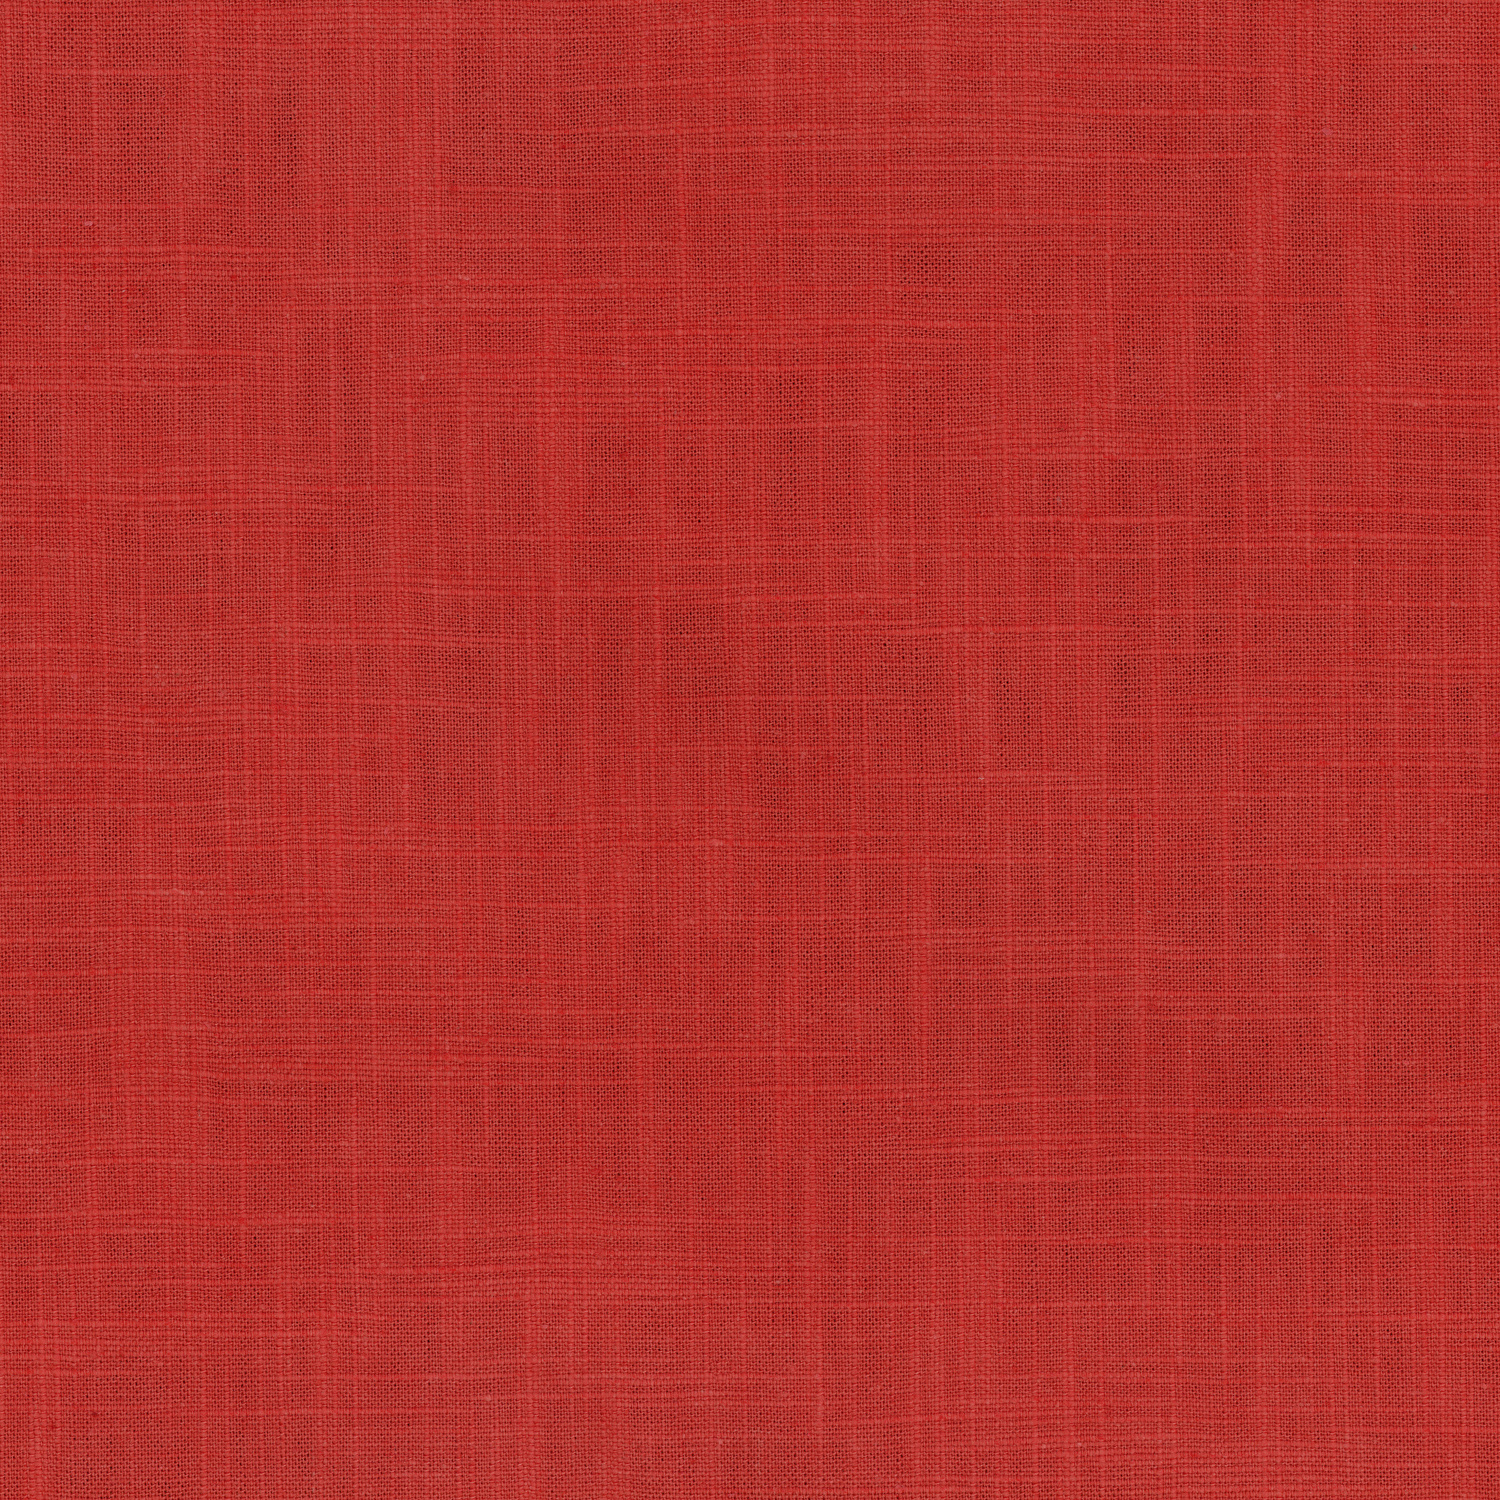 P/K Lifestyles Solid Fabric 54\u0022-Derby Solid/Ruby